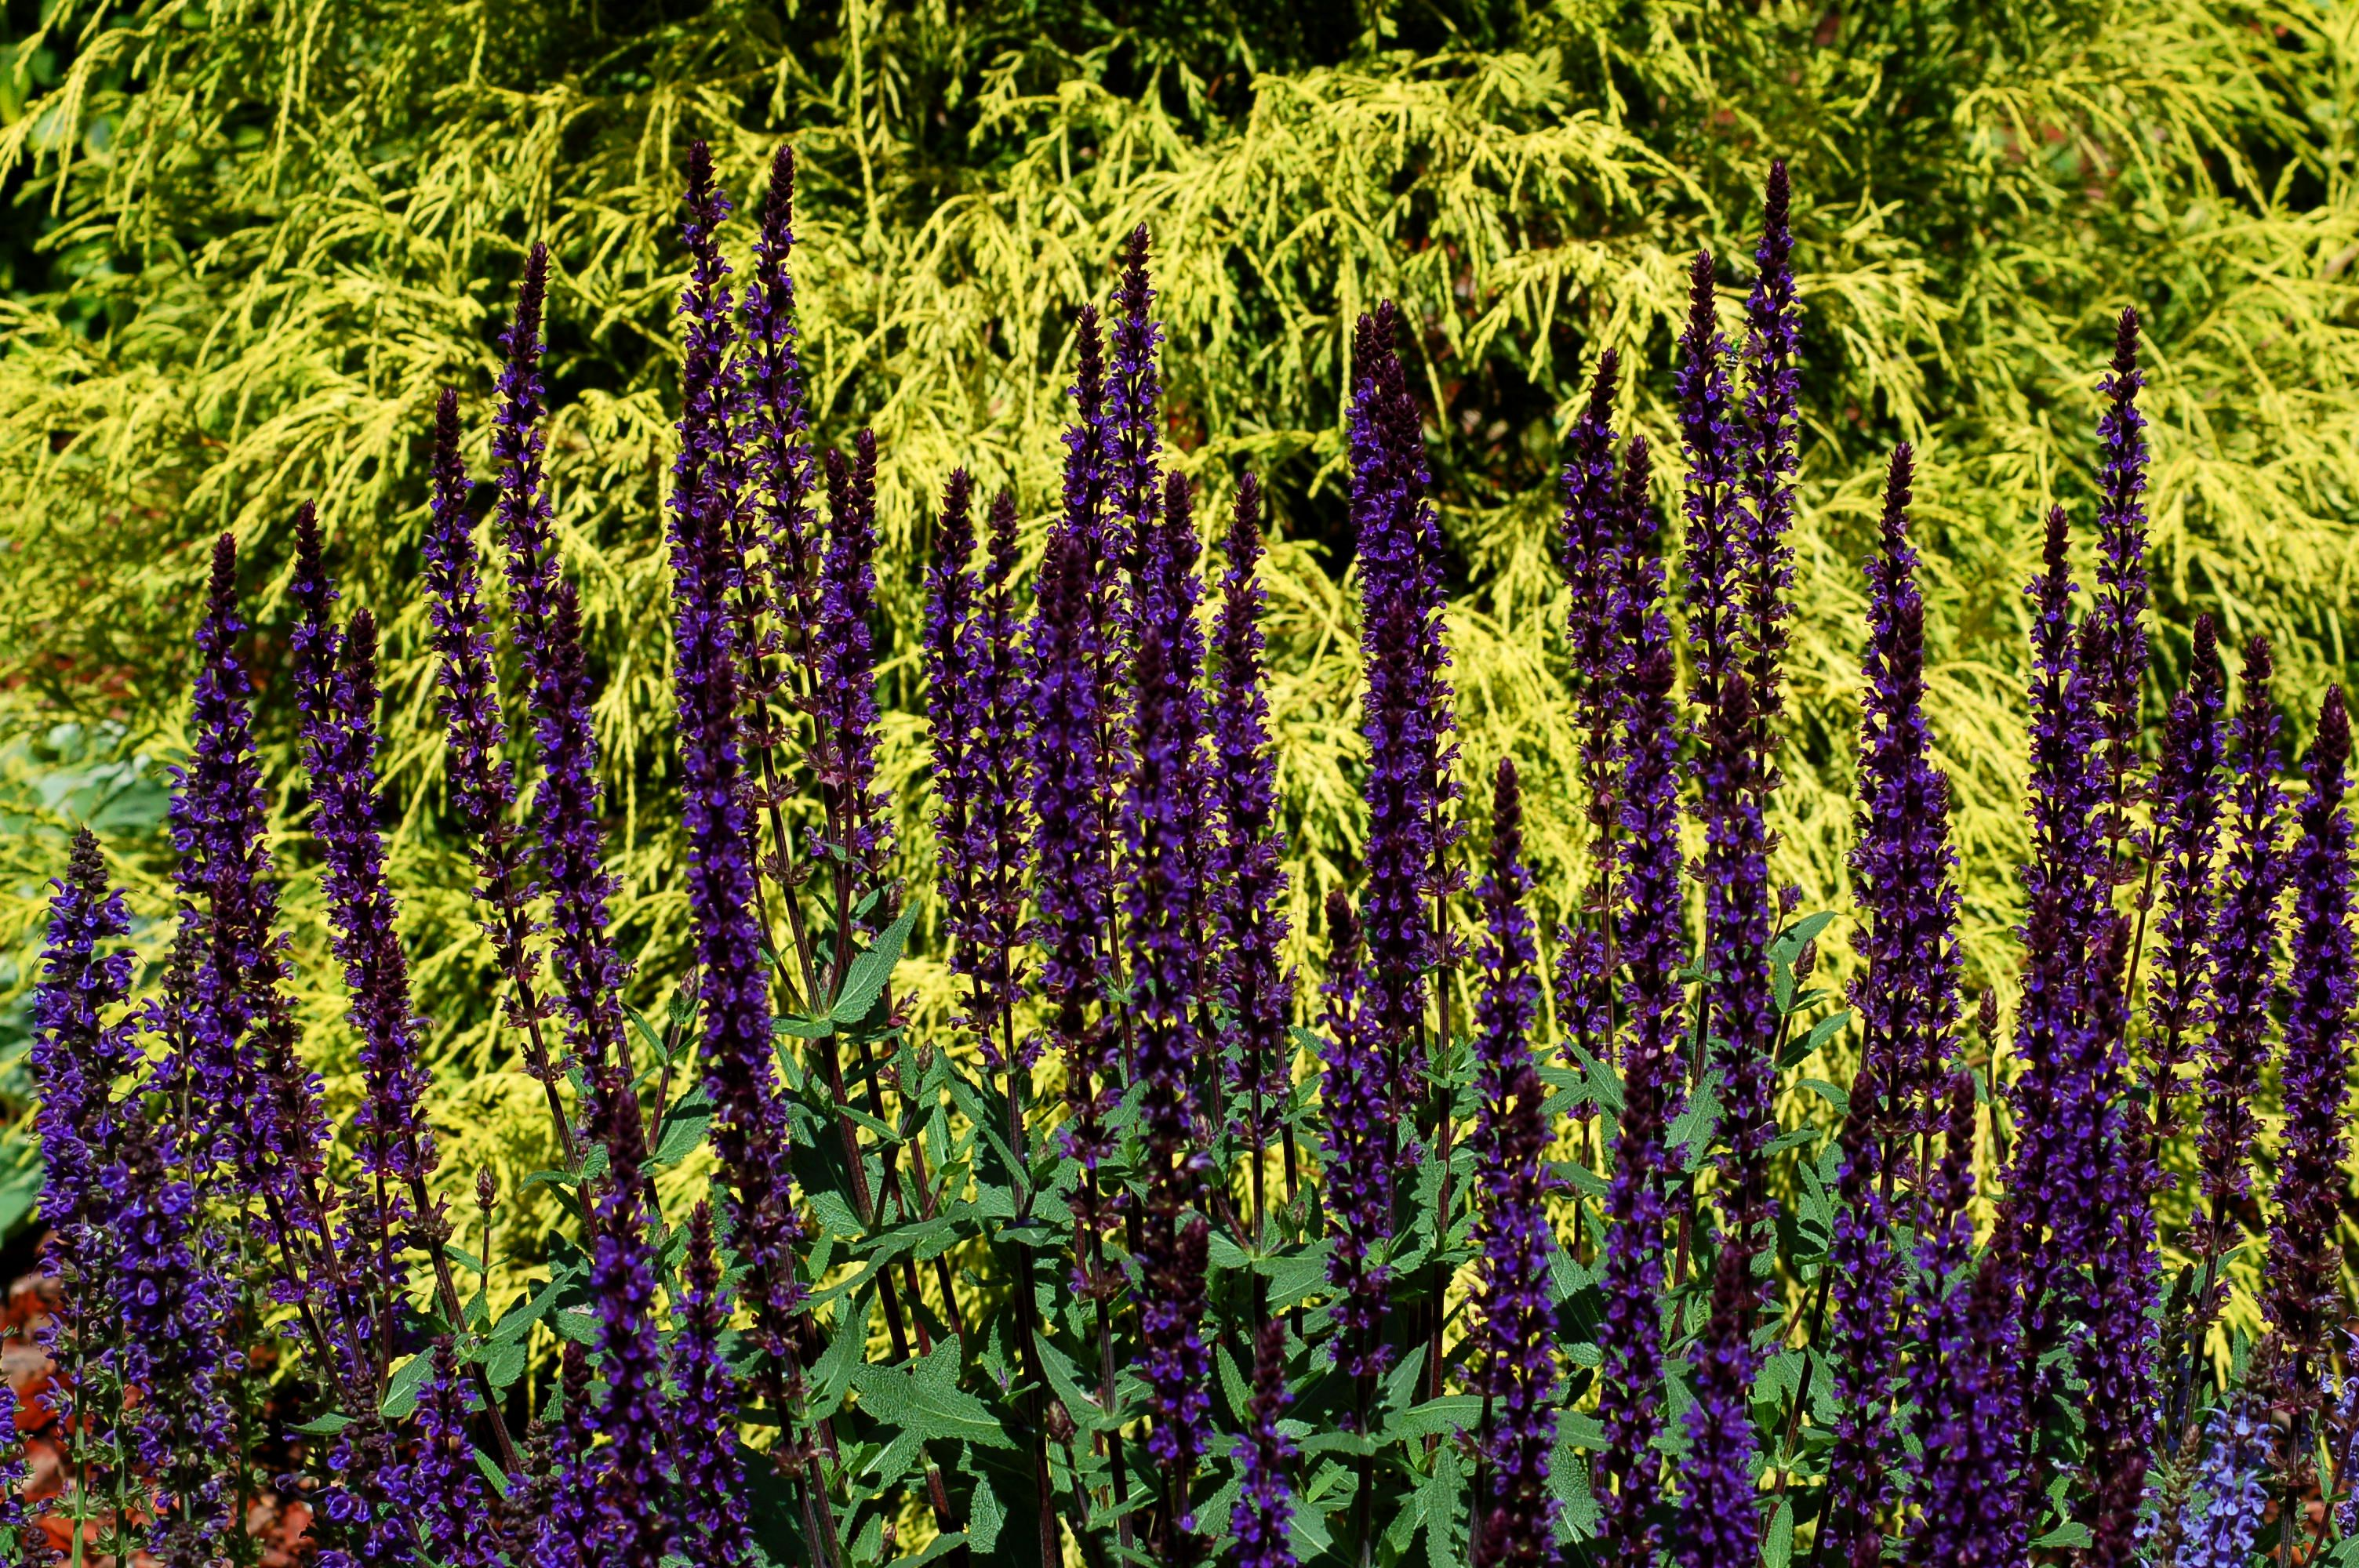 Caradonna salvia spiked flowers against gold grass.